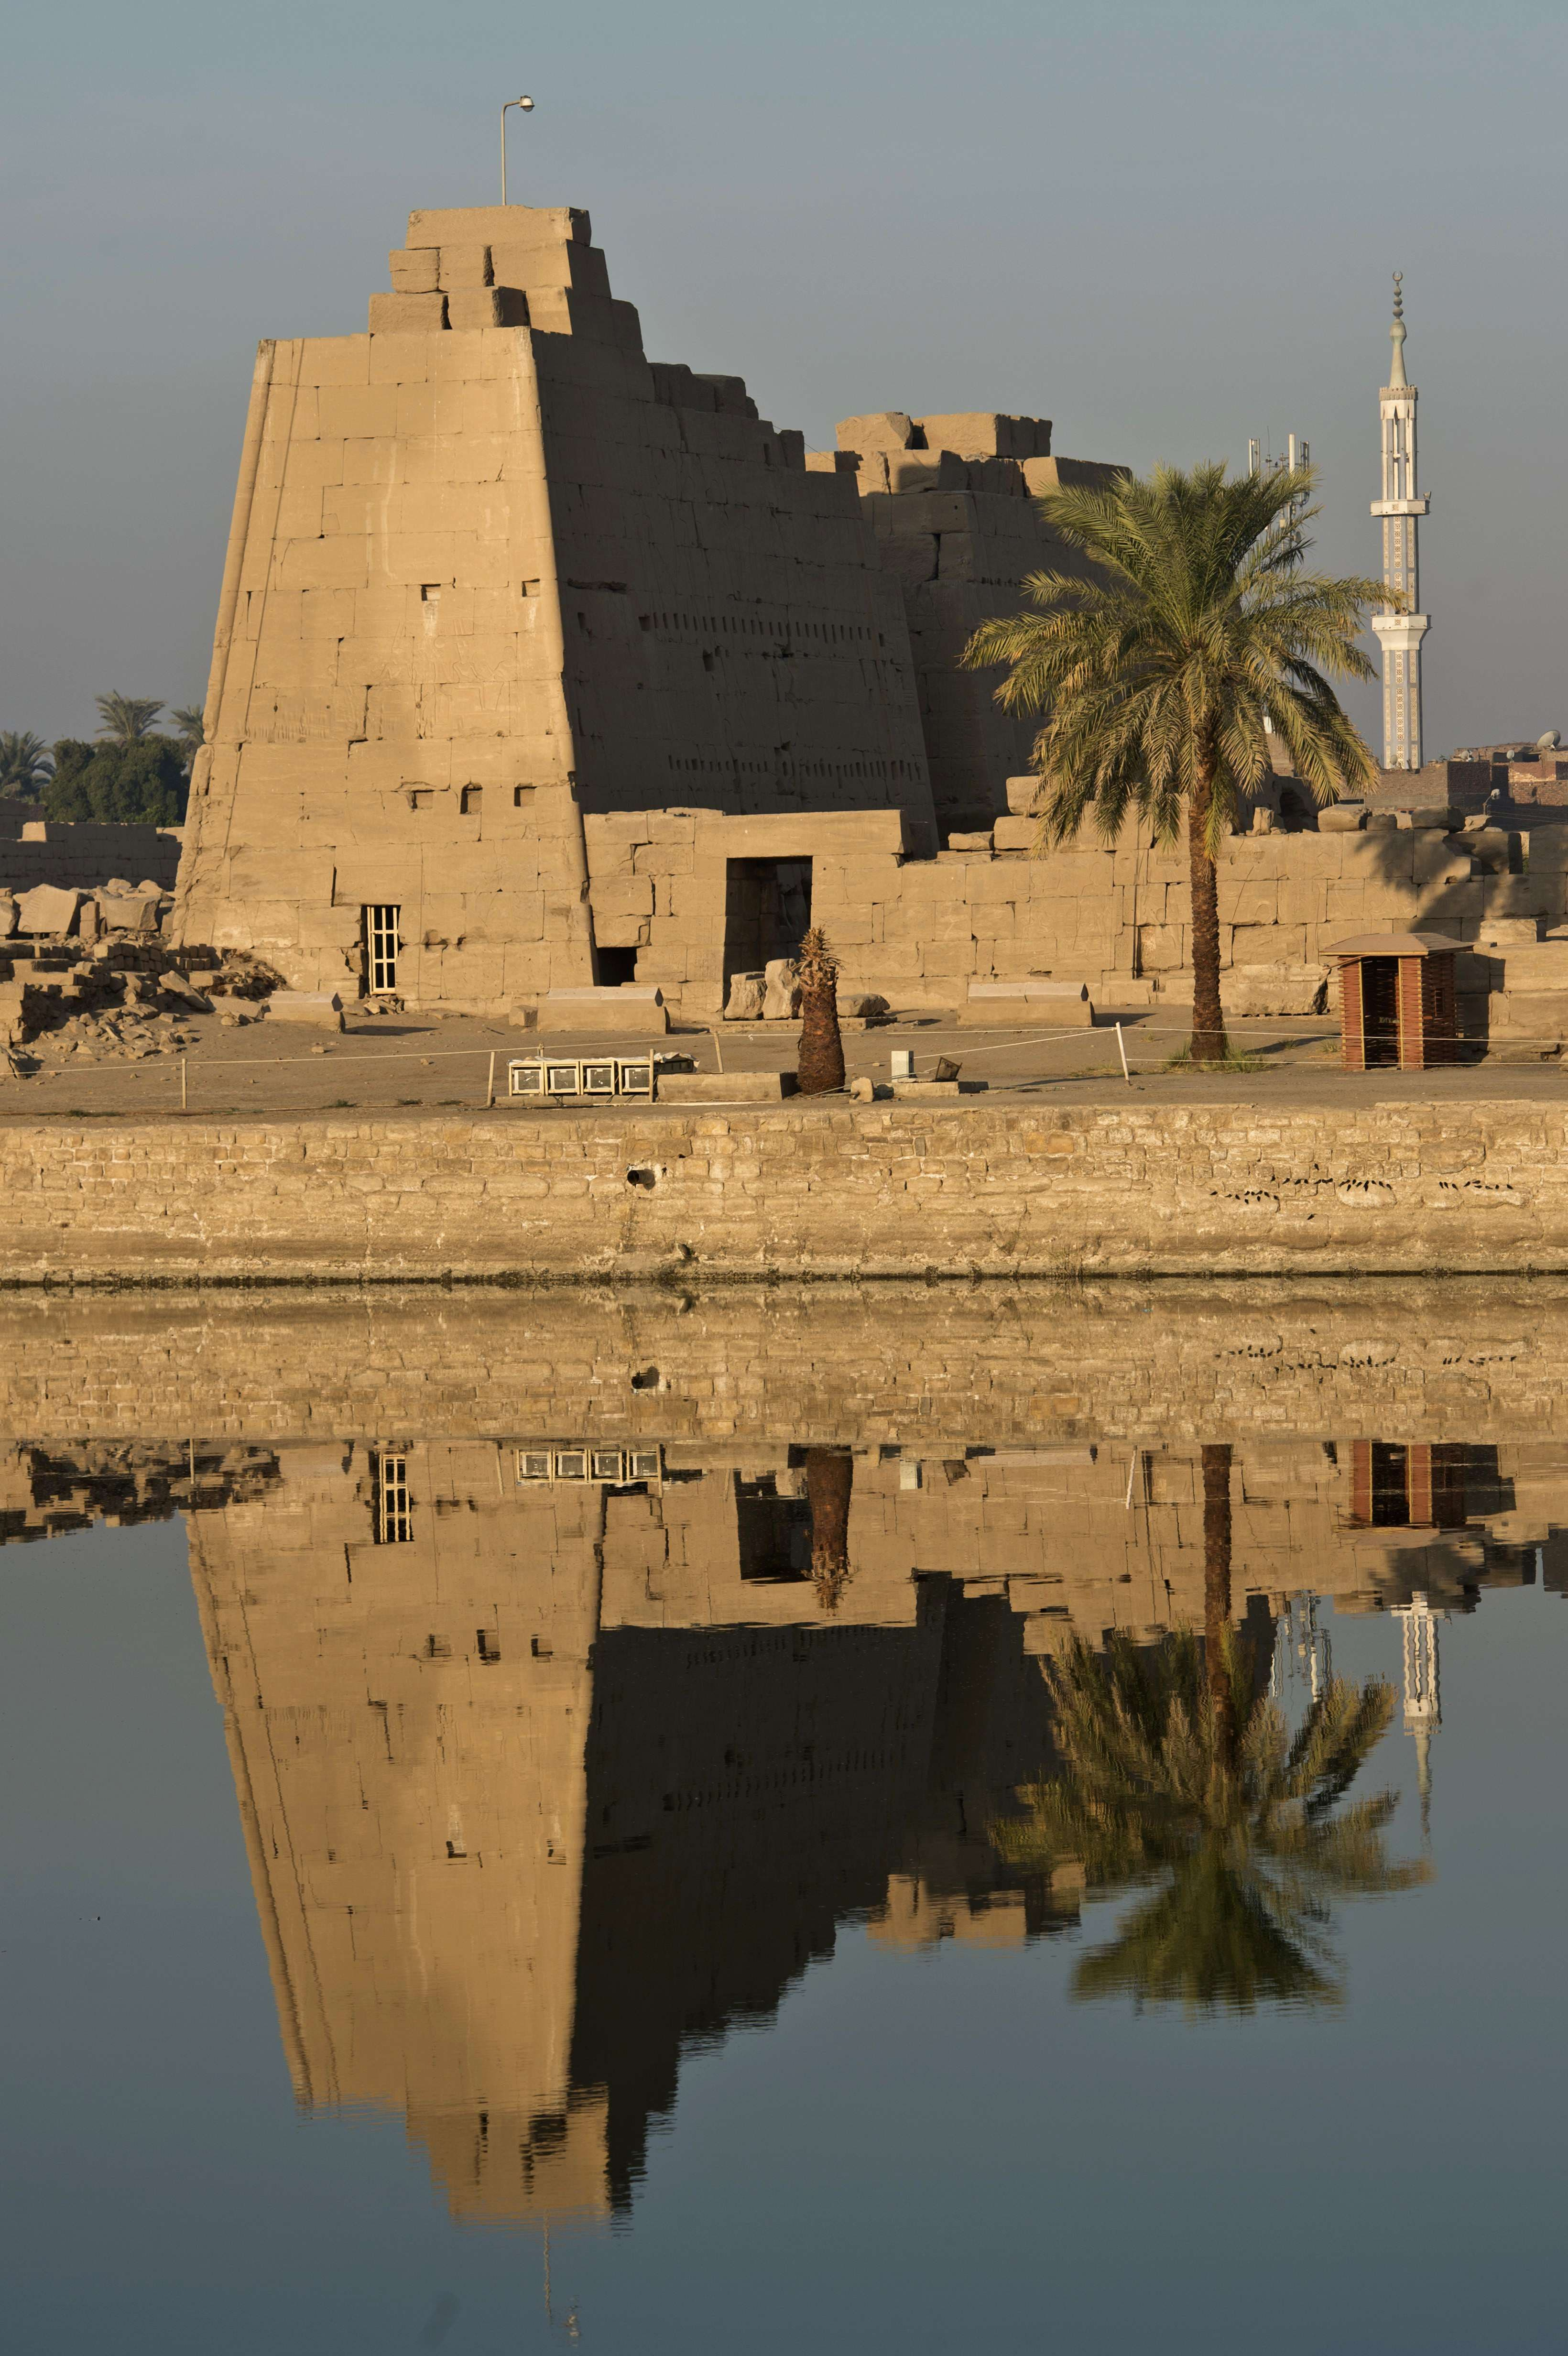 Conflict turns Egypt's Luxor to ghost town